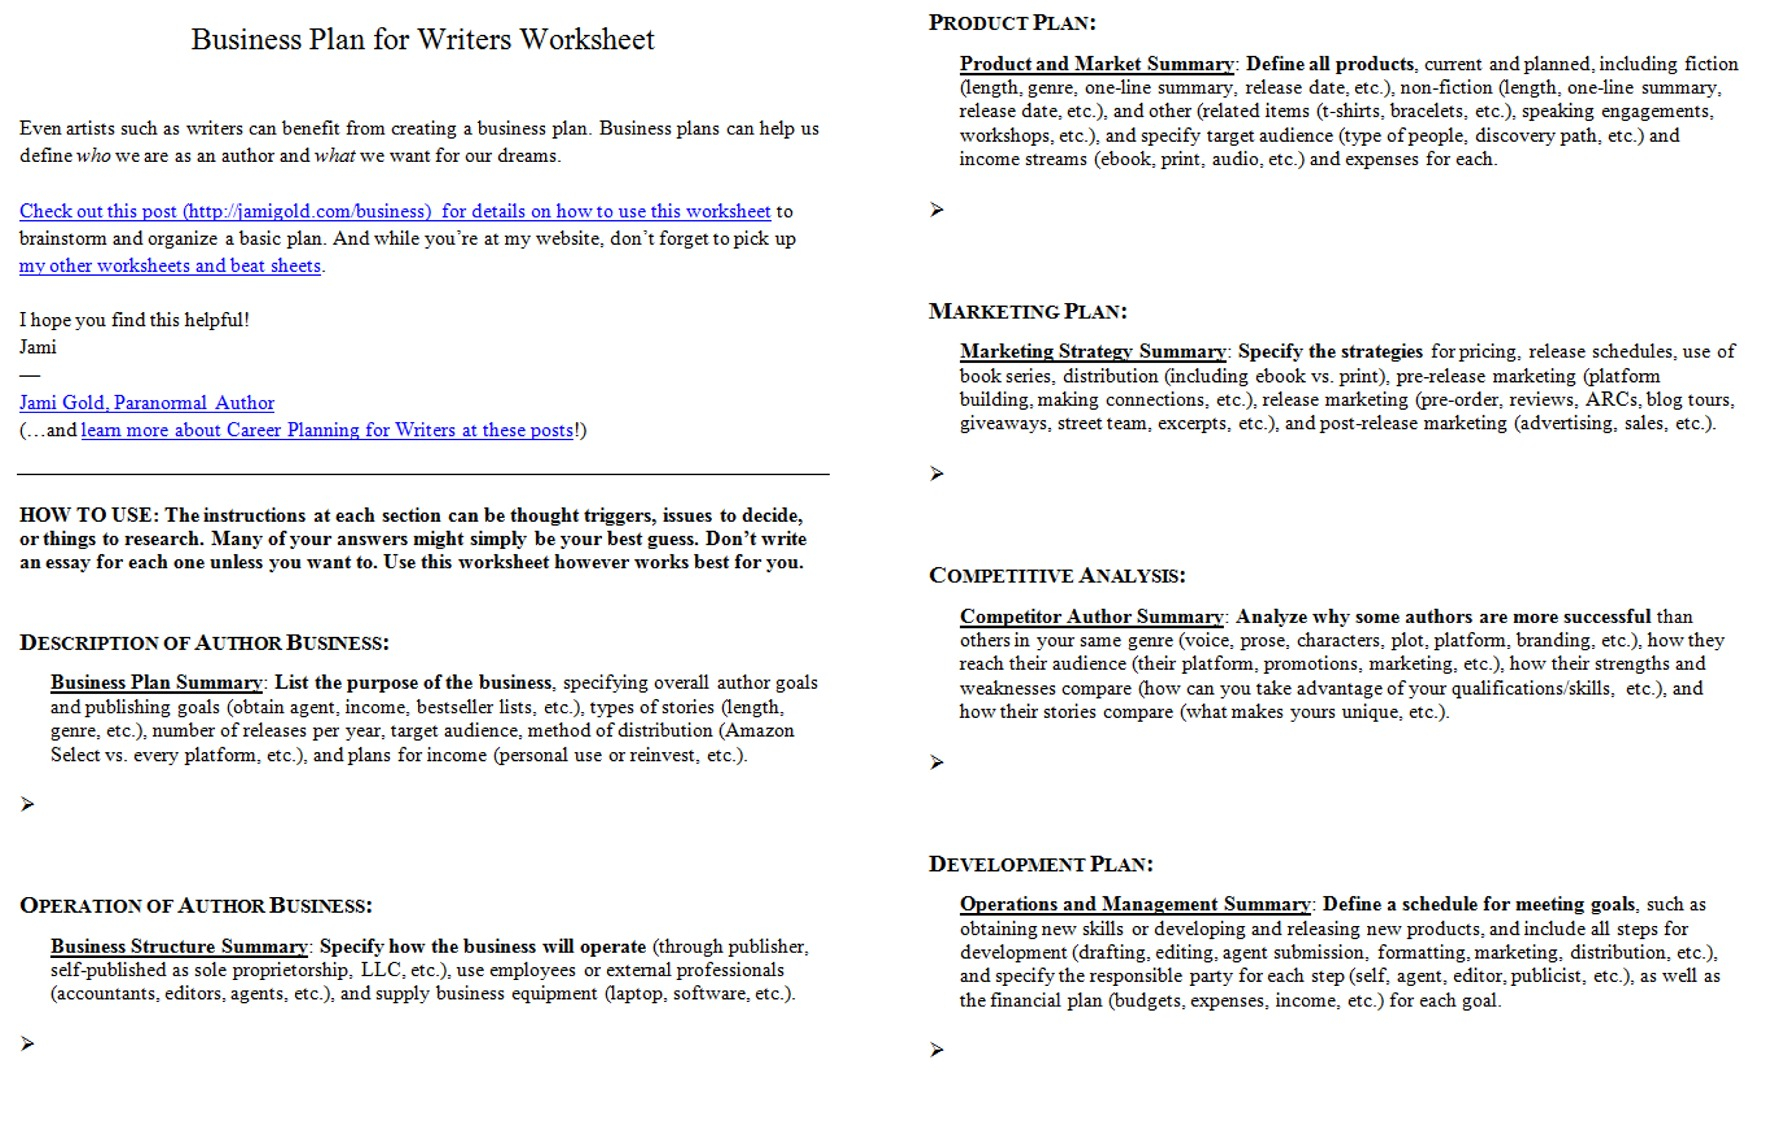 Proatmealus  Pleasing Worksheets For Writers  Jami Gold Paranormal Author With Lovely Screen Shot Of Both Pages Of The Business Plan For Writers Worksheet With Appealing Current Event Worksheets Also Geometric Proof Worksheet In Addition Letter T Preschool Worksheets And Math Worksheets To Print Out As Well As Mode Median Mean Worksheets Additionally Rounding Place Value Worksheets From Jamigoldcom With Proatmealus  Lovely Worksheets For Writers  Jami Gold Paranormal Author With Appealing Screen Shot Of Both Pages Of The Business Plan For Writers Worksheet And Pleasing Current Event Worksheets Also Geometric Proof Worksheet In Addition Letter T Preschool Worksheets From Jamigoldcom